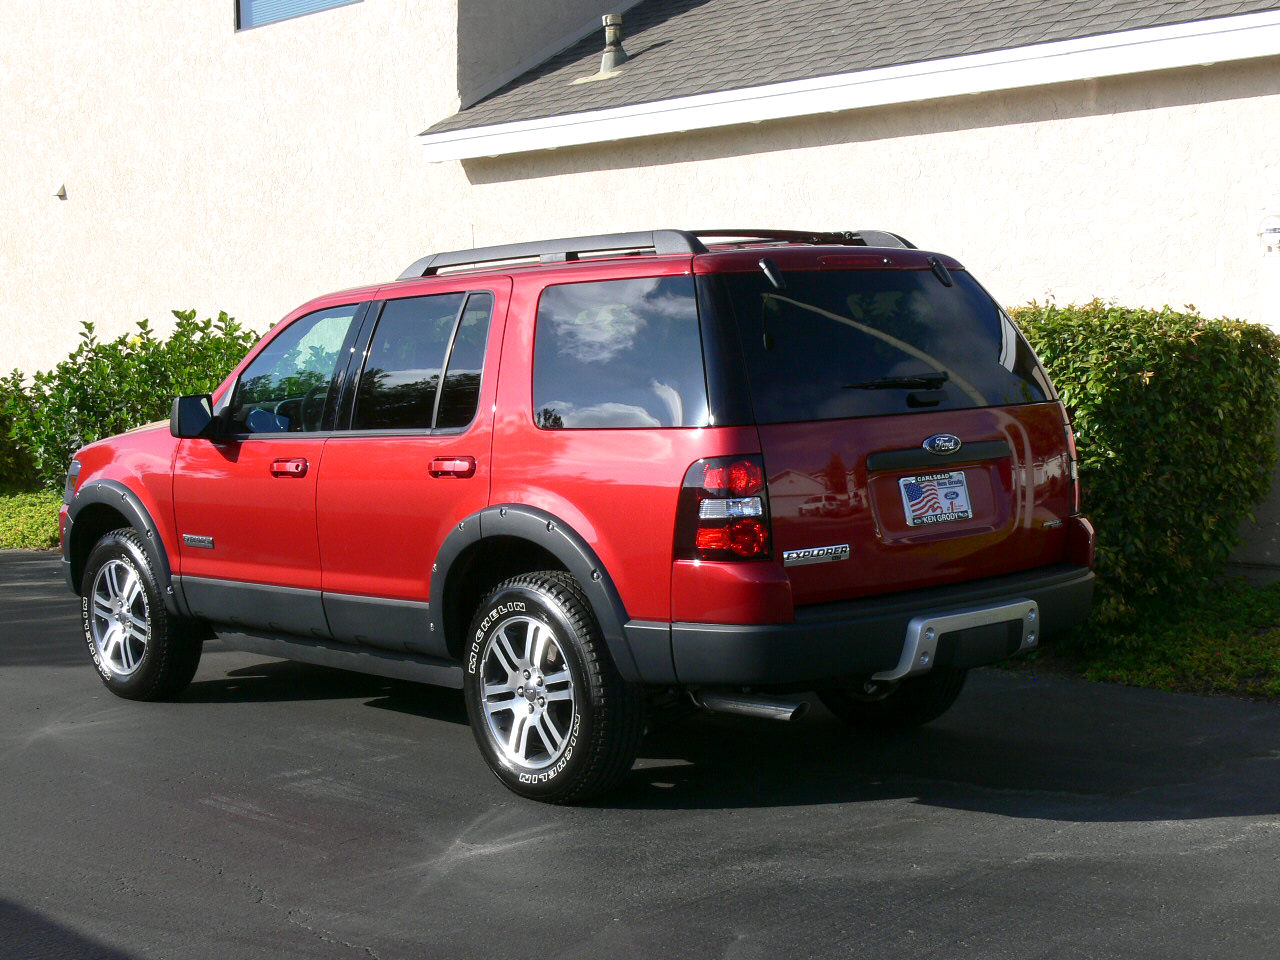 2007 FORD EXPLORER - Image #13